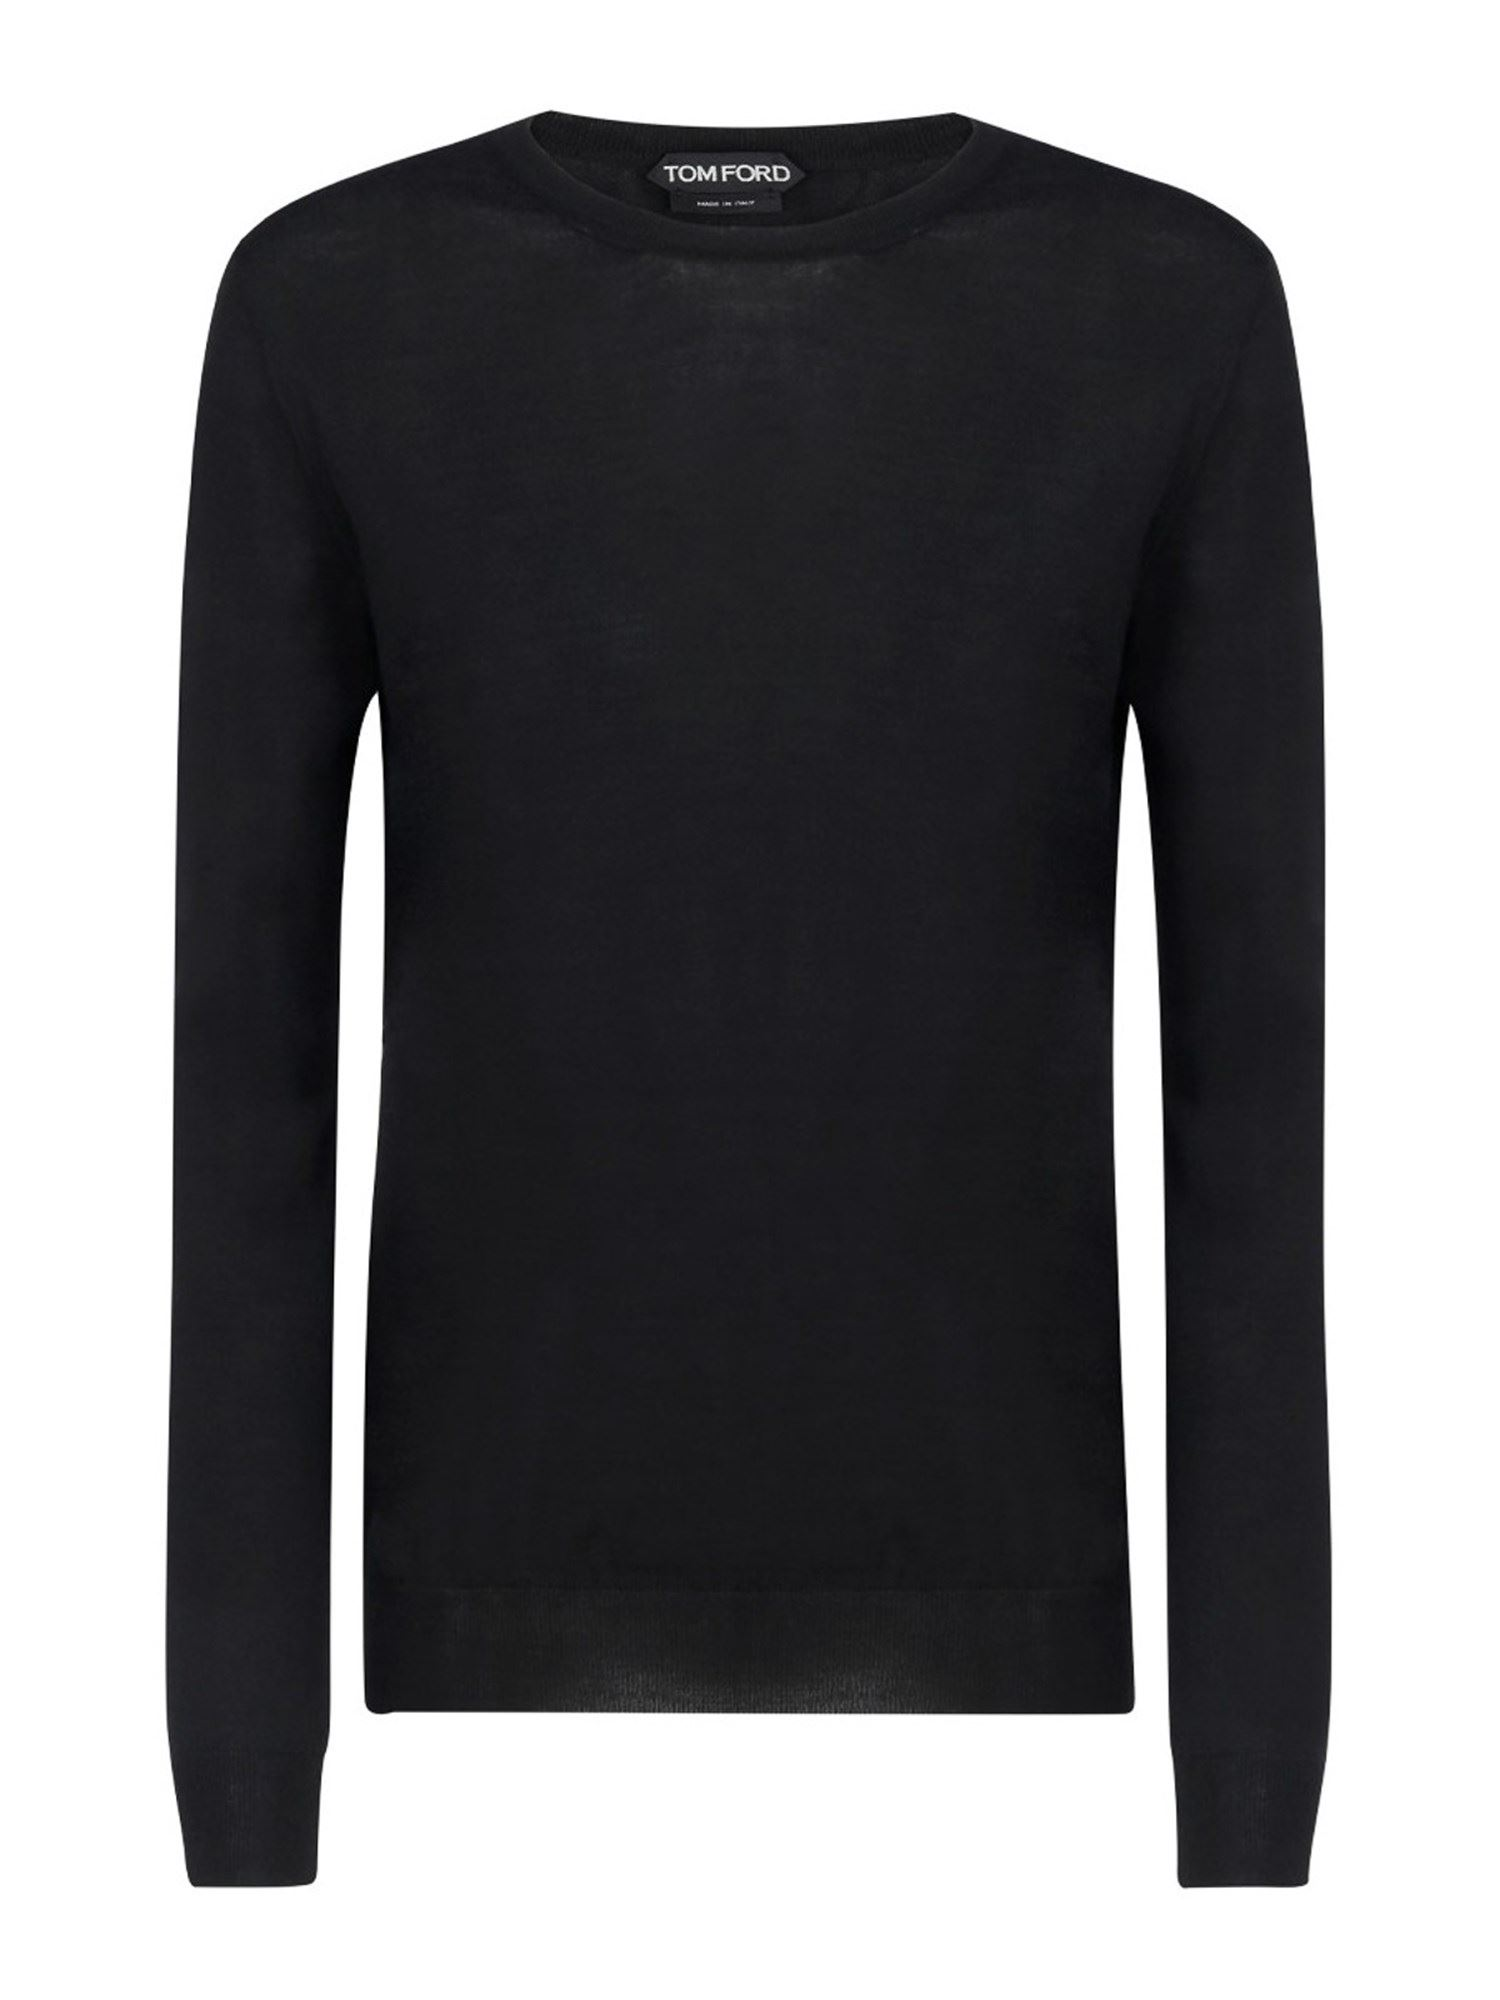 Tom Ford BLACK CASHMERE SWEATER